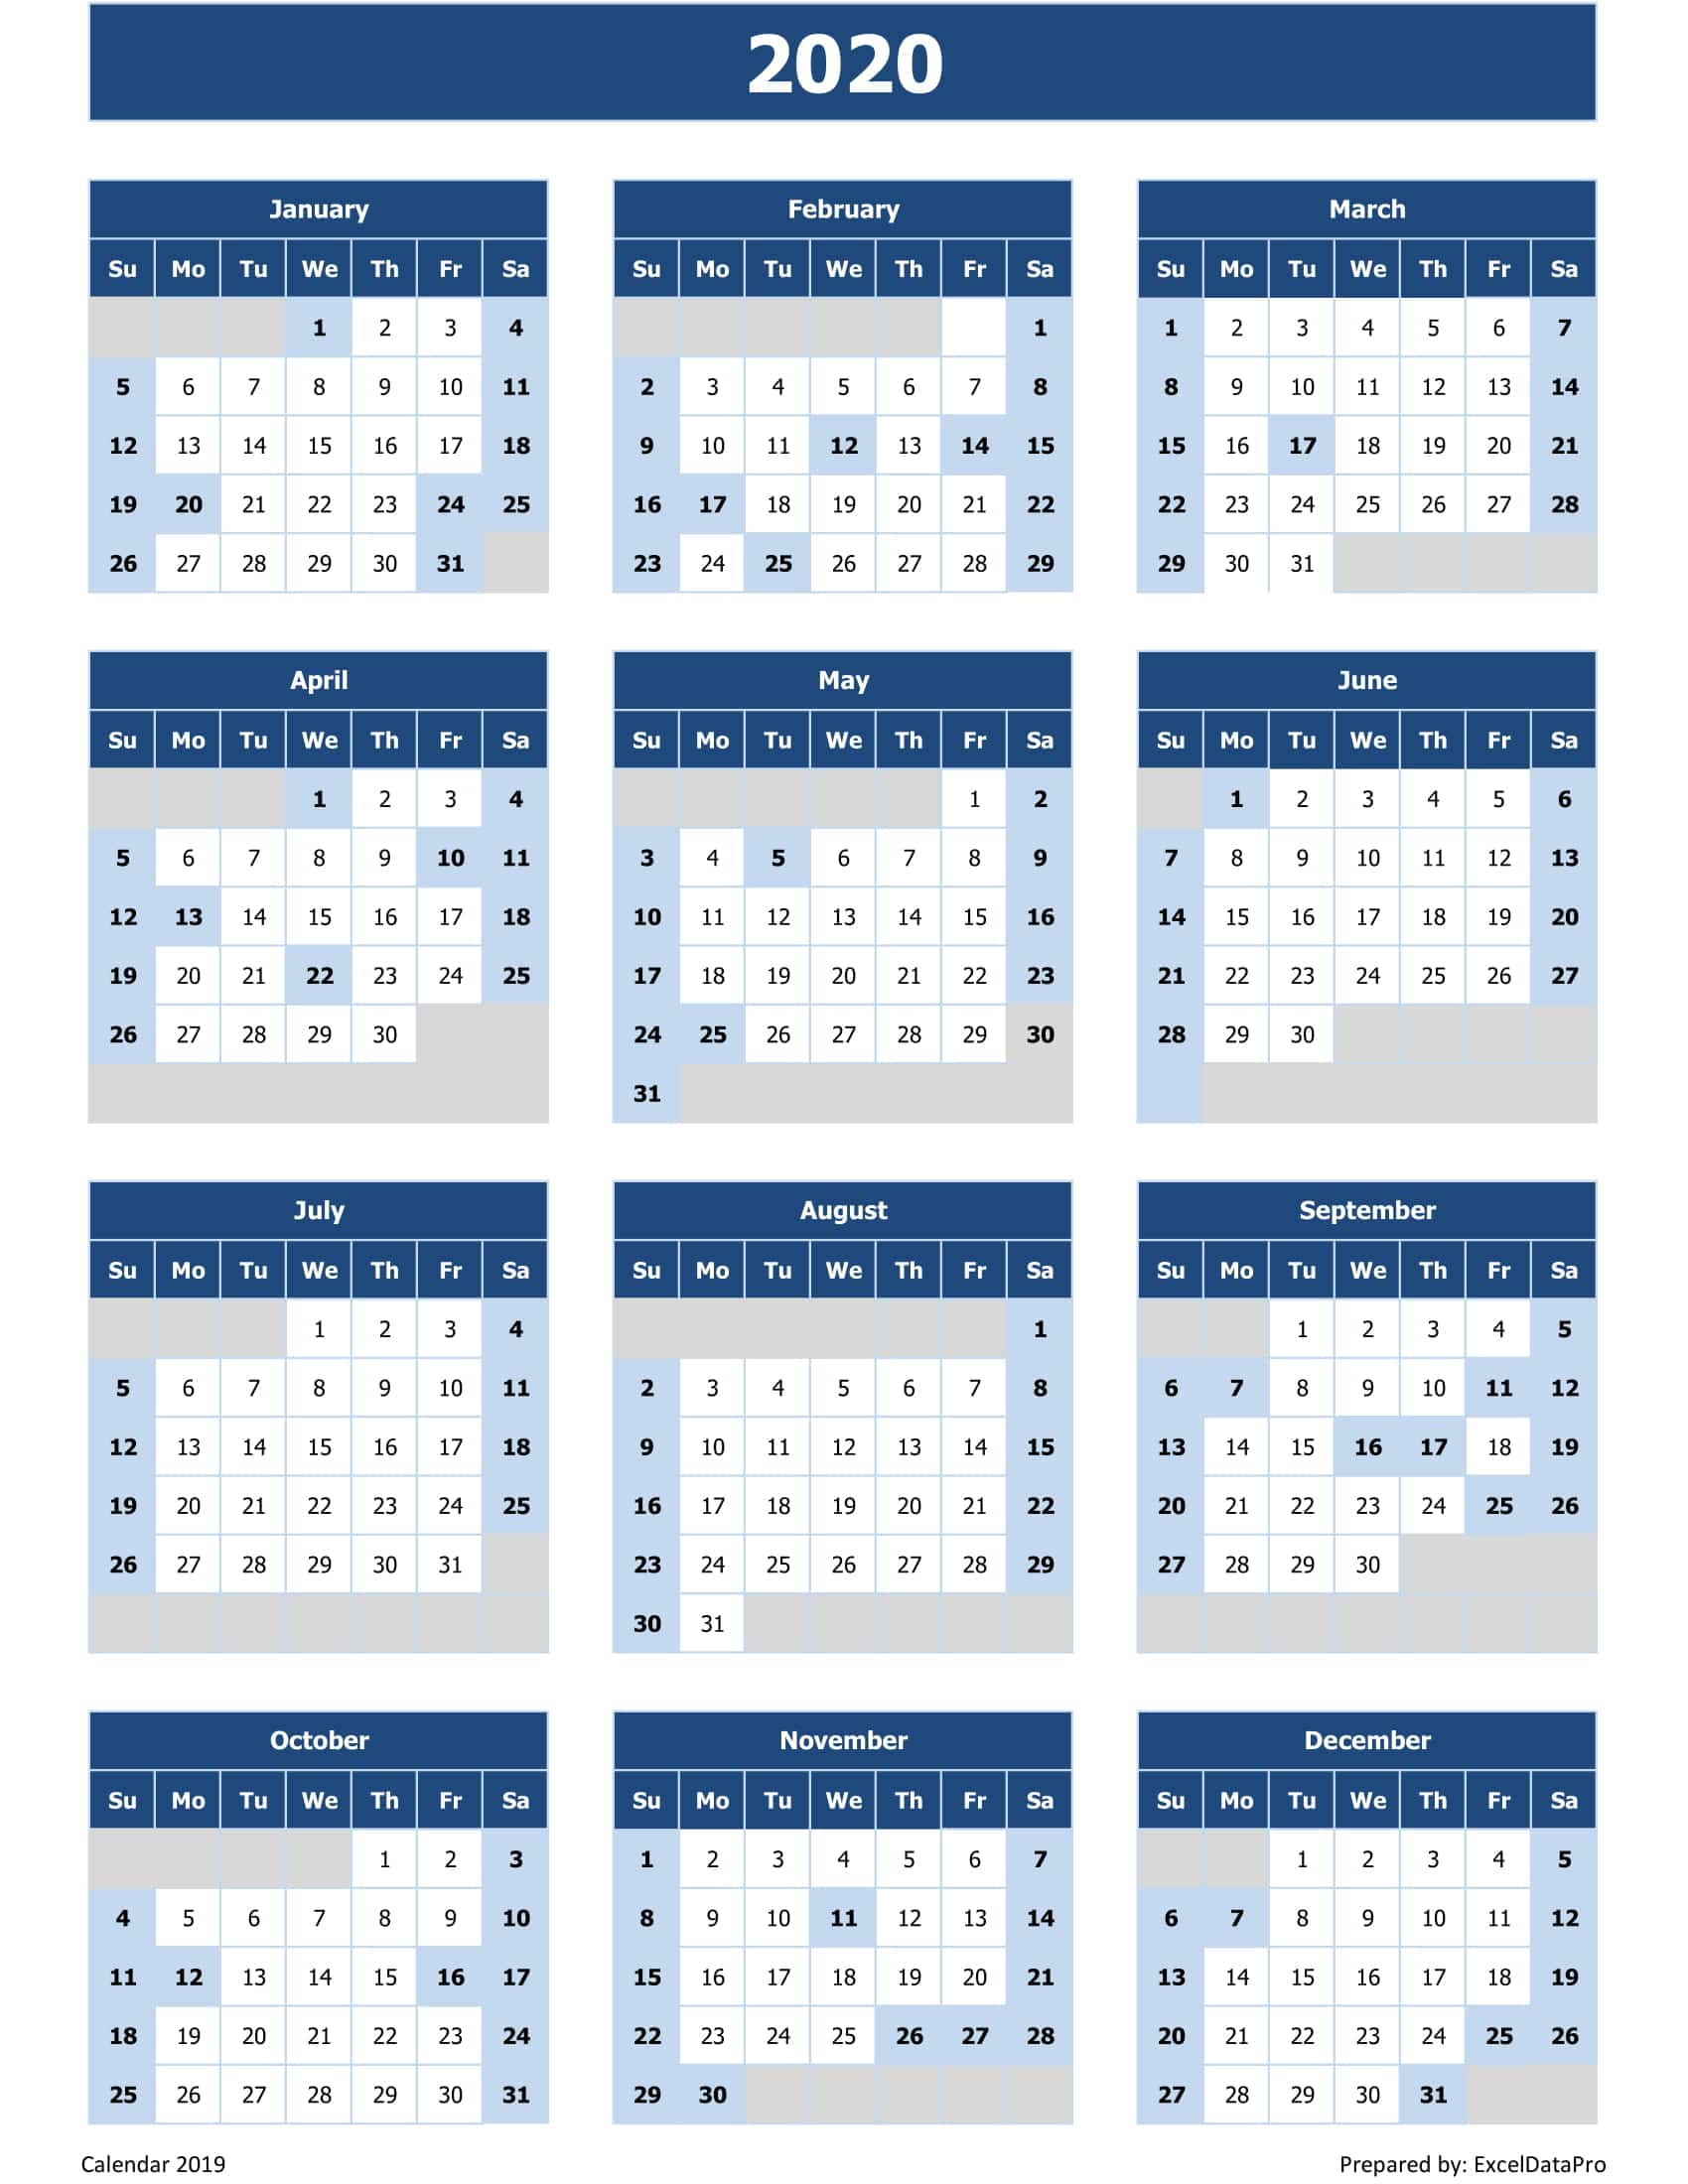 2020 Calendar Excel Templates, Printable Pdfs & Images